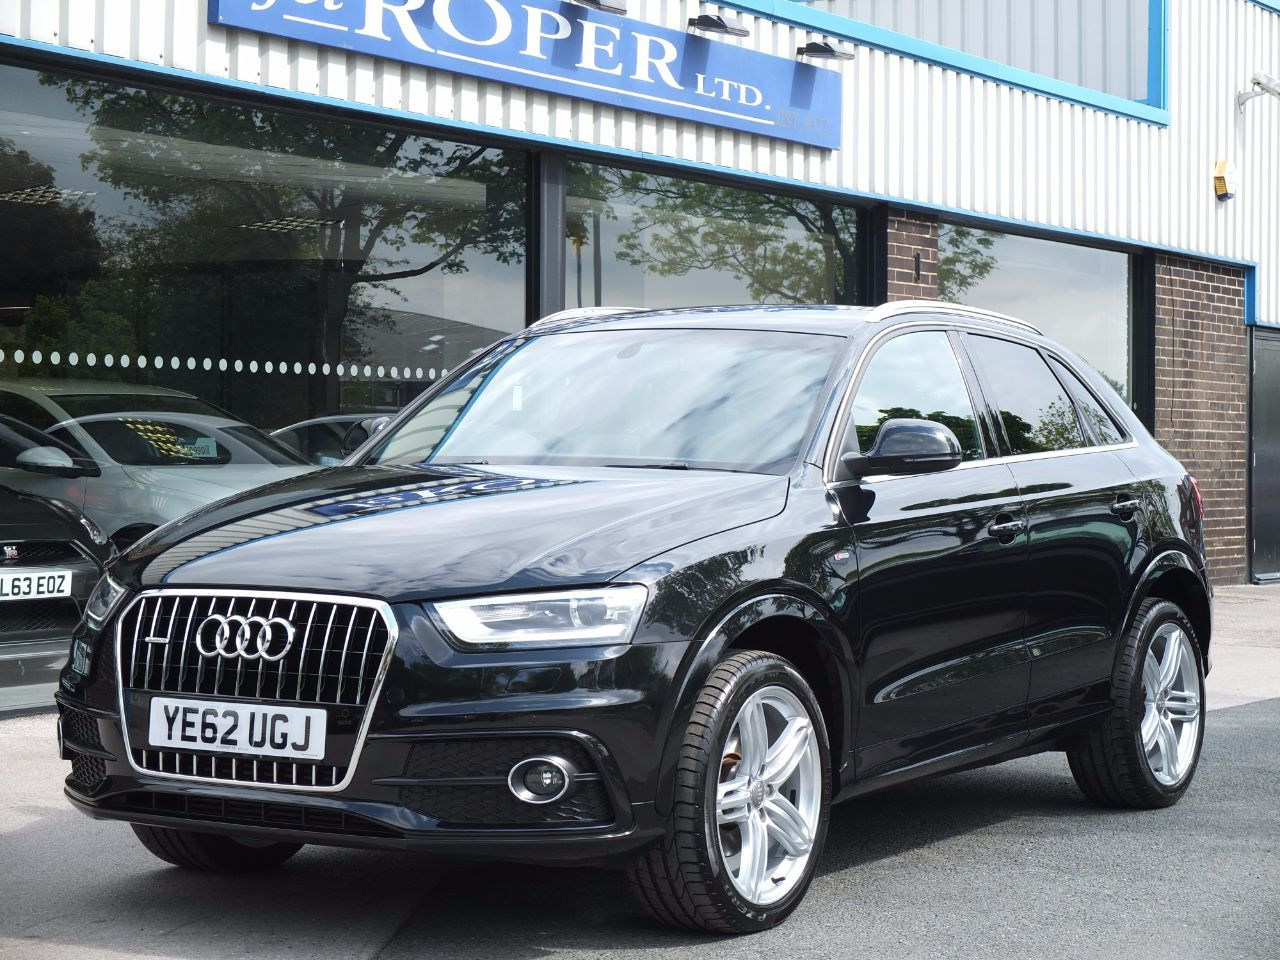 Audi Q3 2.0 TDI [177] quattro S Line Tronic 177ps +++Spec Estate Diesel Phantom Black MetallicAudi Q3 2.0 TDI [177] quattro S Line Tronic 177ps +++Spec Estate Diesel Phantom Black Metallic at fa Roper Ltd Bradford